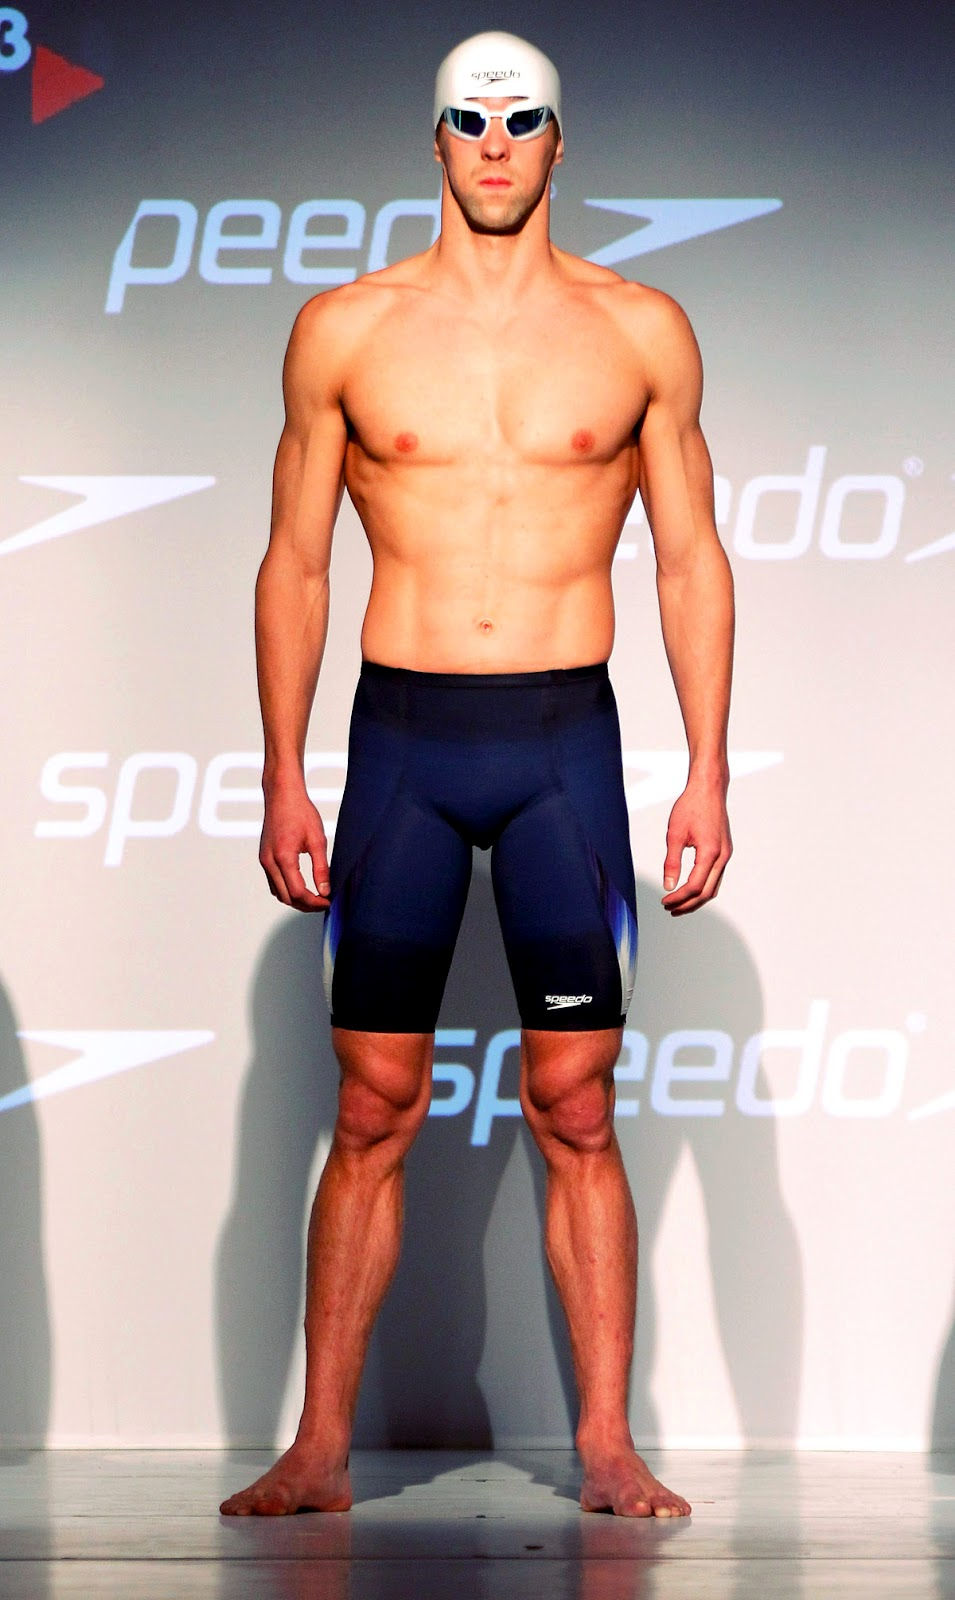 All sports players michael phelps body images 2012